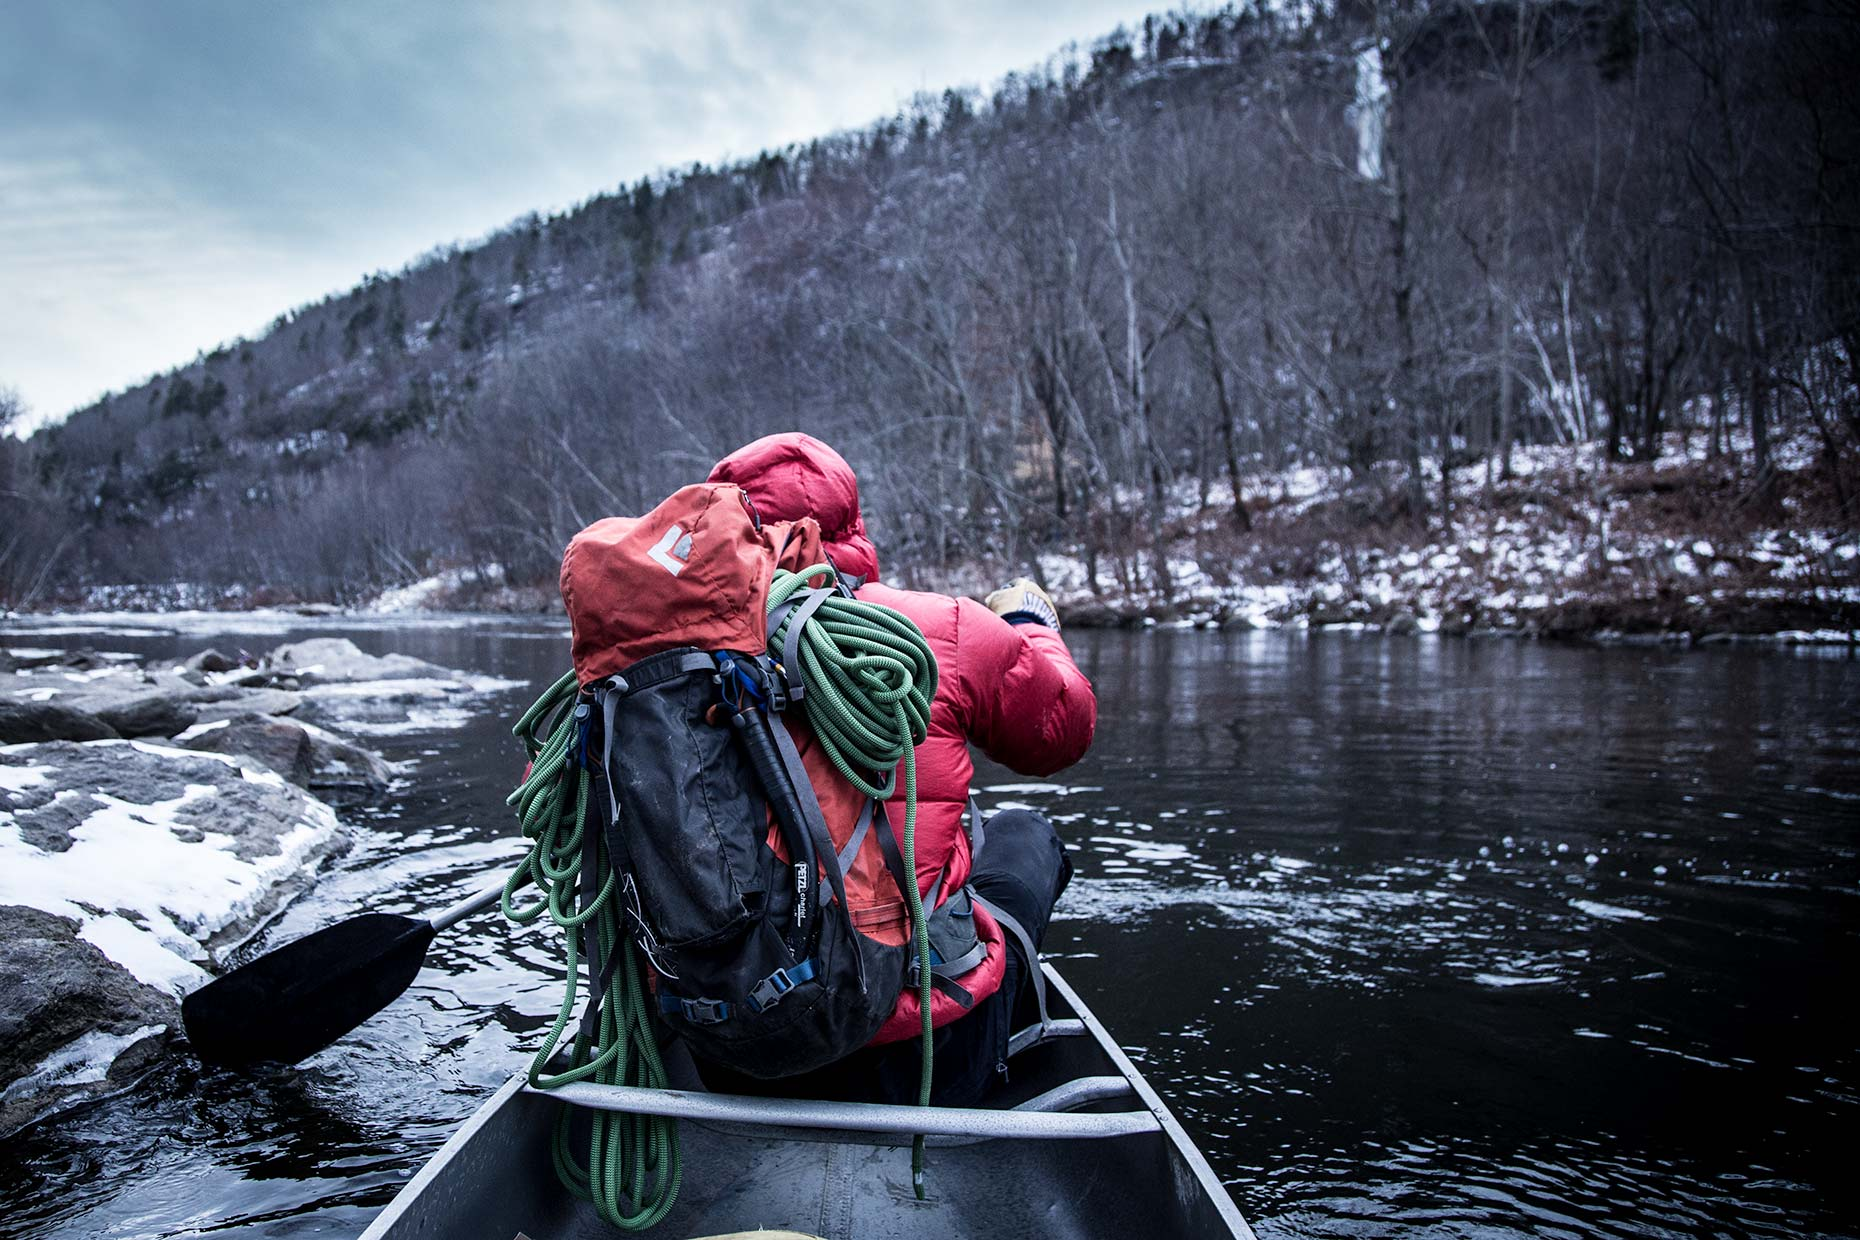 An ice climber in a canoe with climbing pack and rope paddles a river in winter